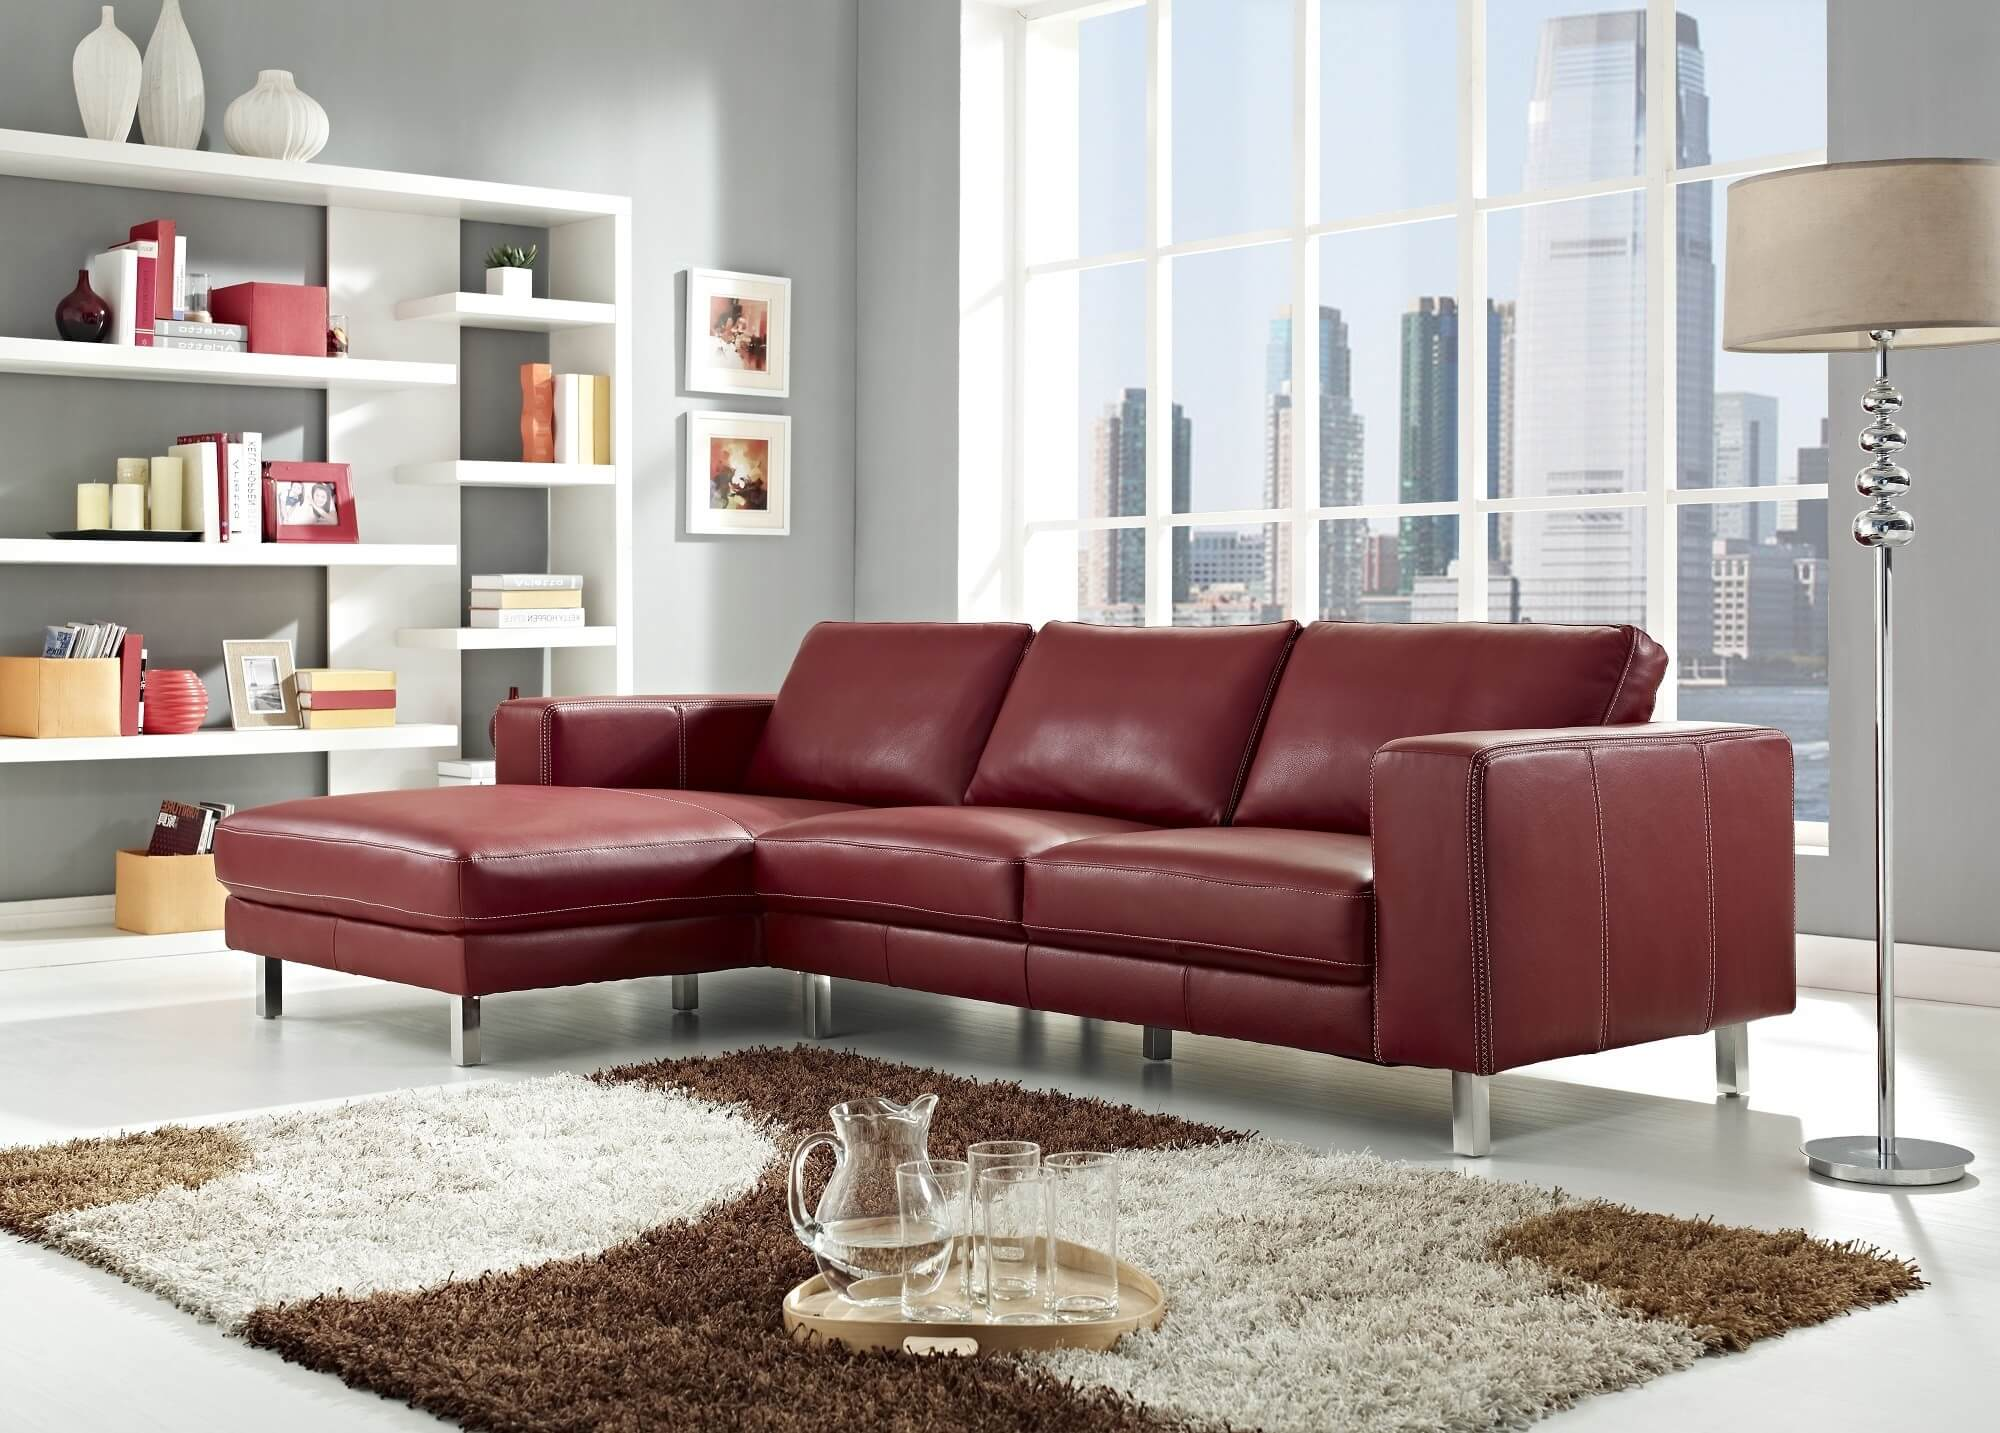 Awesome This Elegant Red Leather Sofa Is Made With A Solid Wood Frame, Chromed  Stainless Steel .